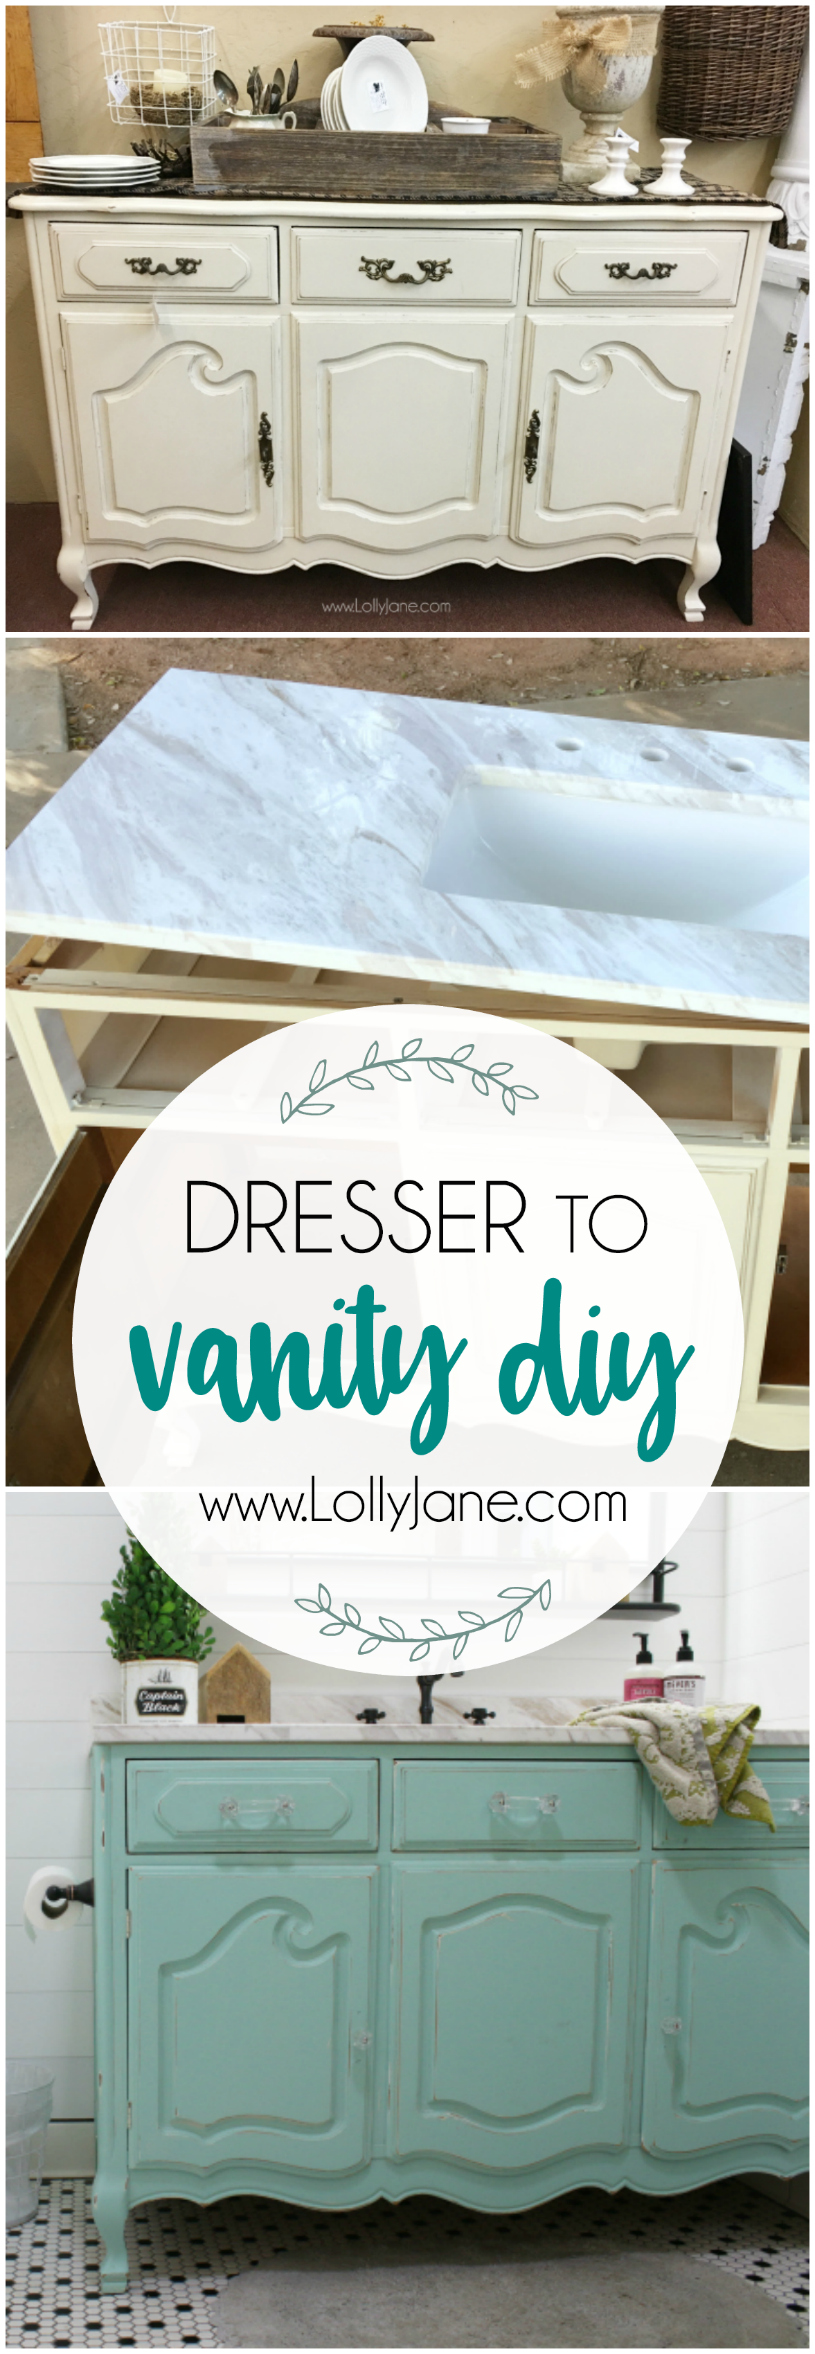 Loving this dresser to bathroom vanity tutorial, so fun to dress up a standard bathroom vanity!! Love this farmhouse bathroom remodel!